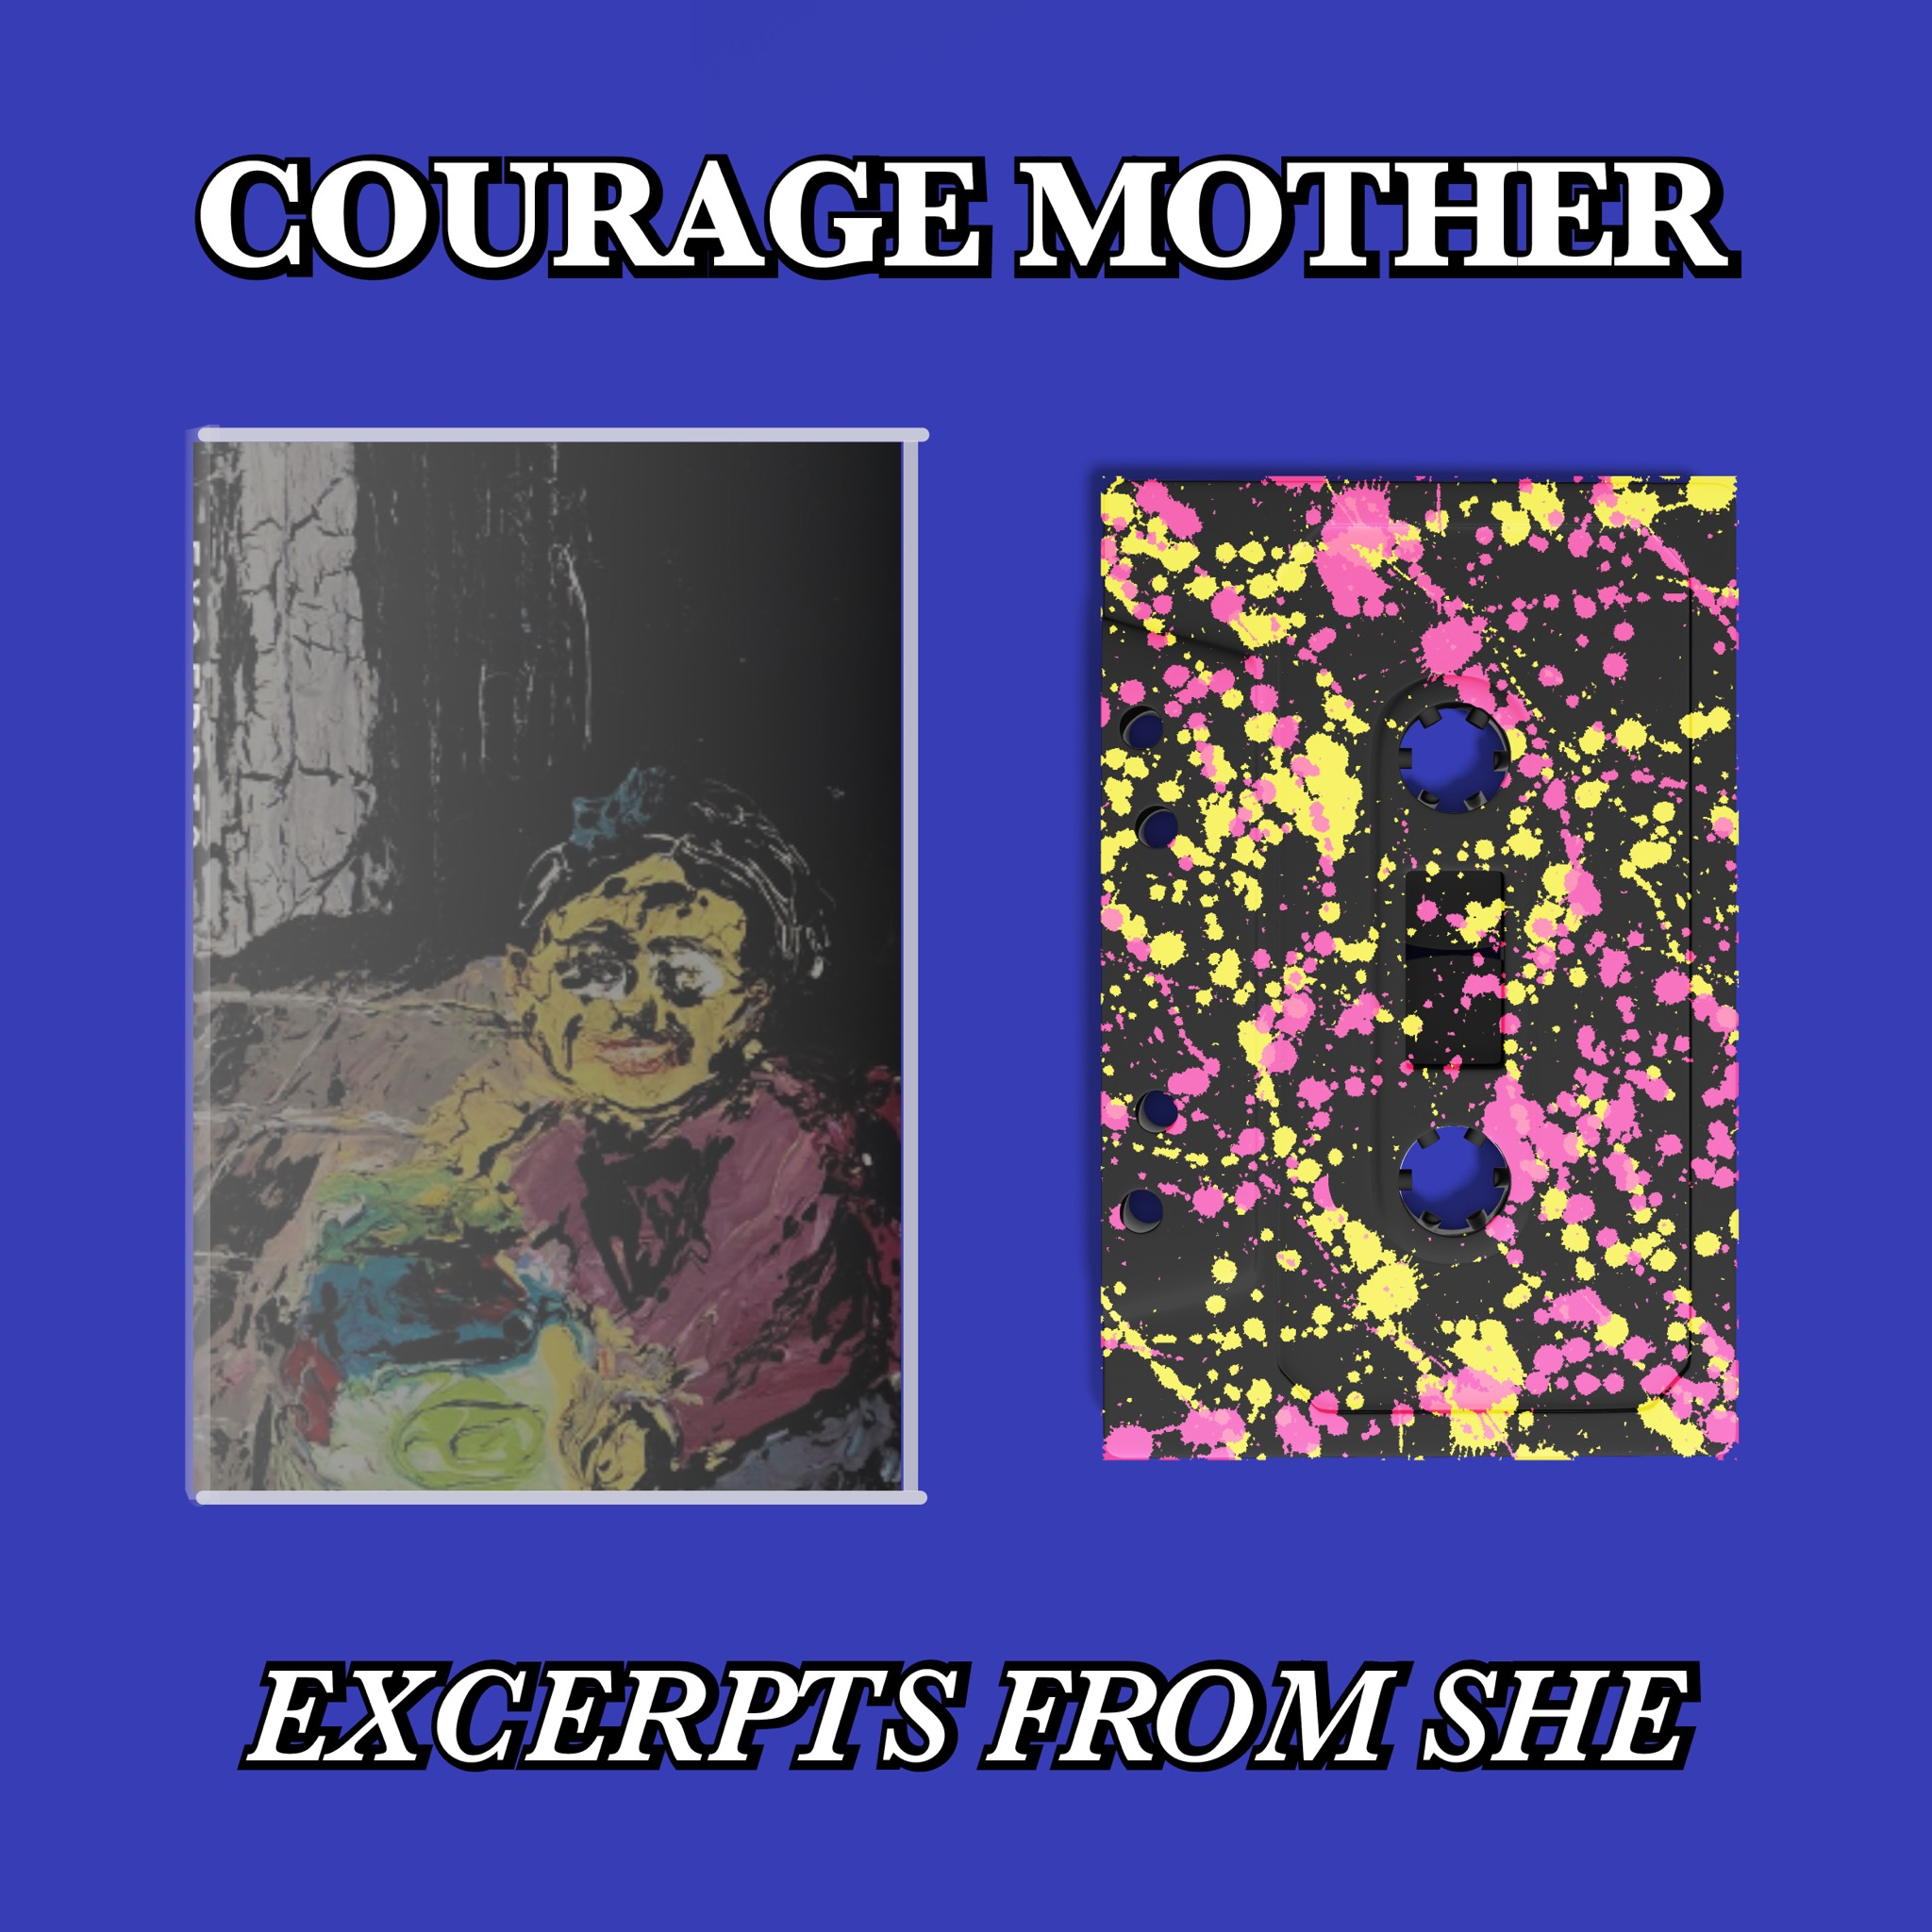 Courage Mother - Excerpts From She